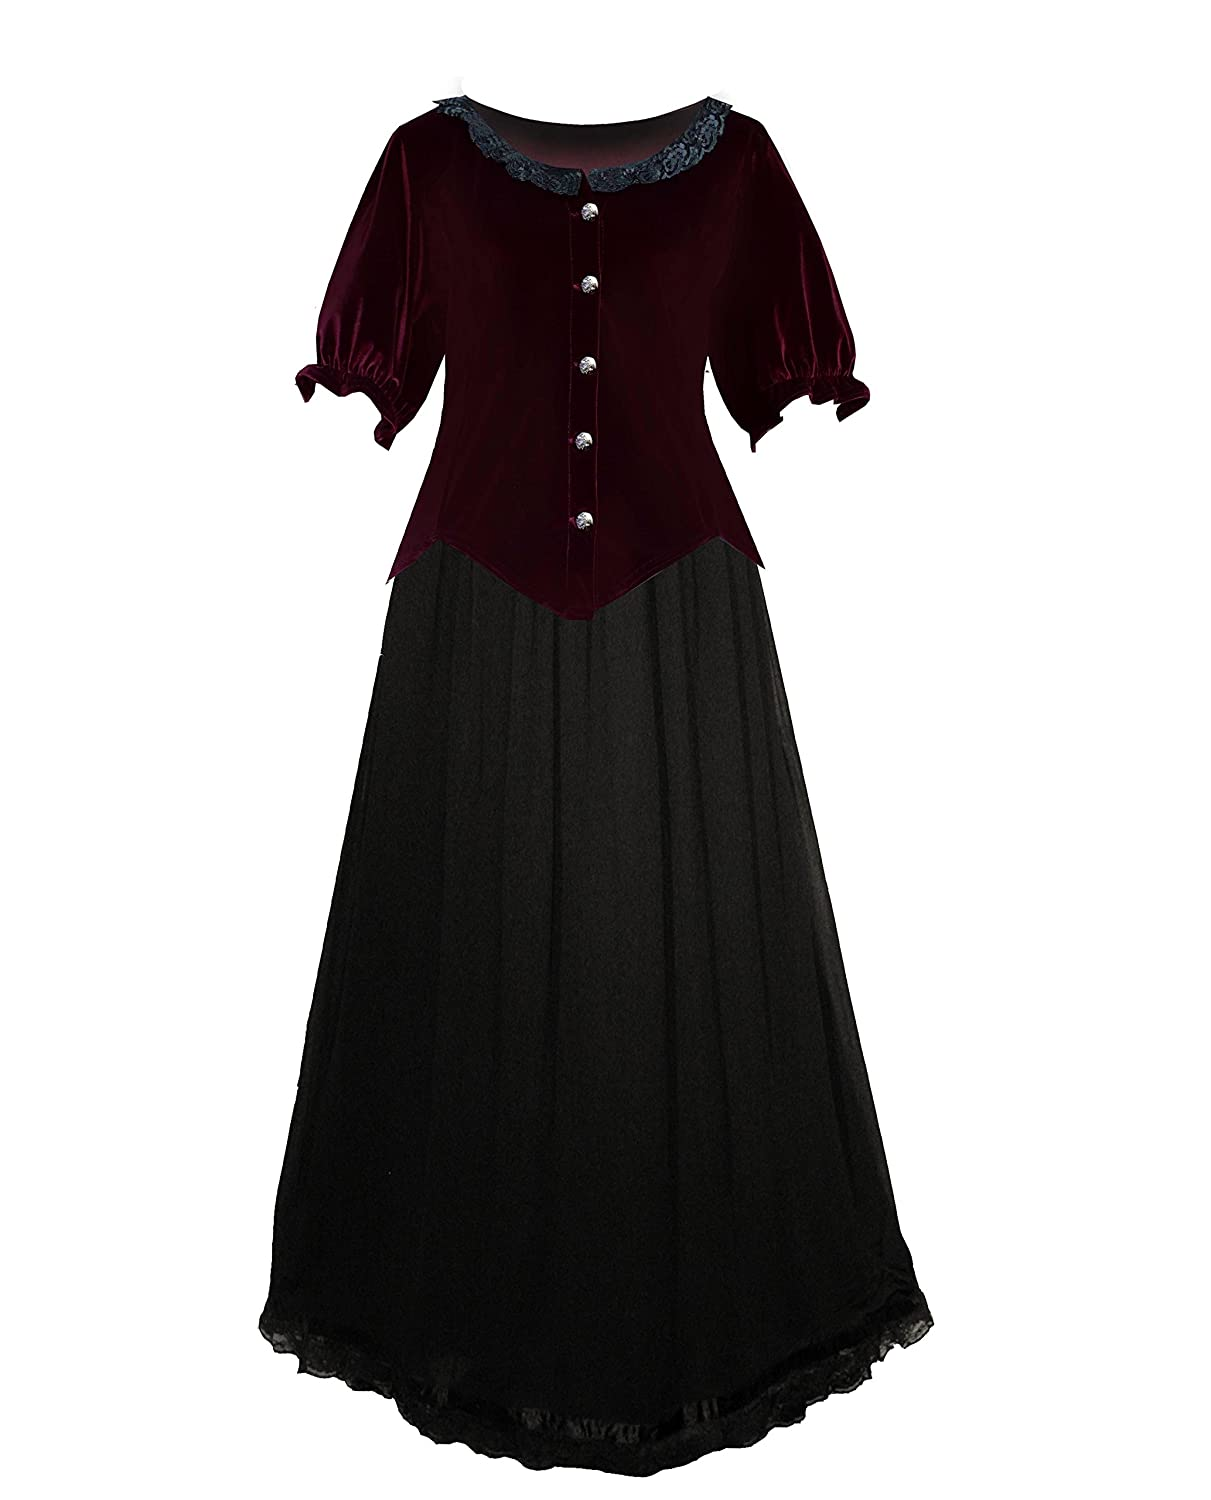 Edwardian Ladies Clothing – 1900, 1910s, Titanic Era Victorian Steampunk Gothic Renaissance Velvet Top & Long Skirt $89.00 AT vintagedancer.com